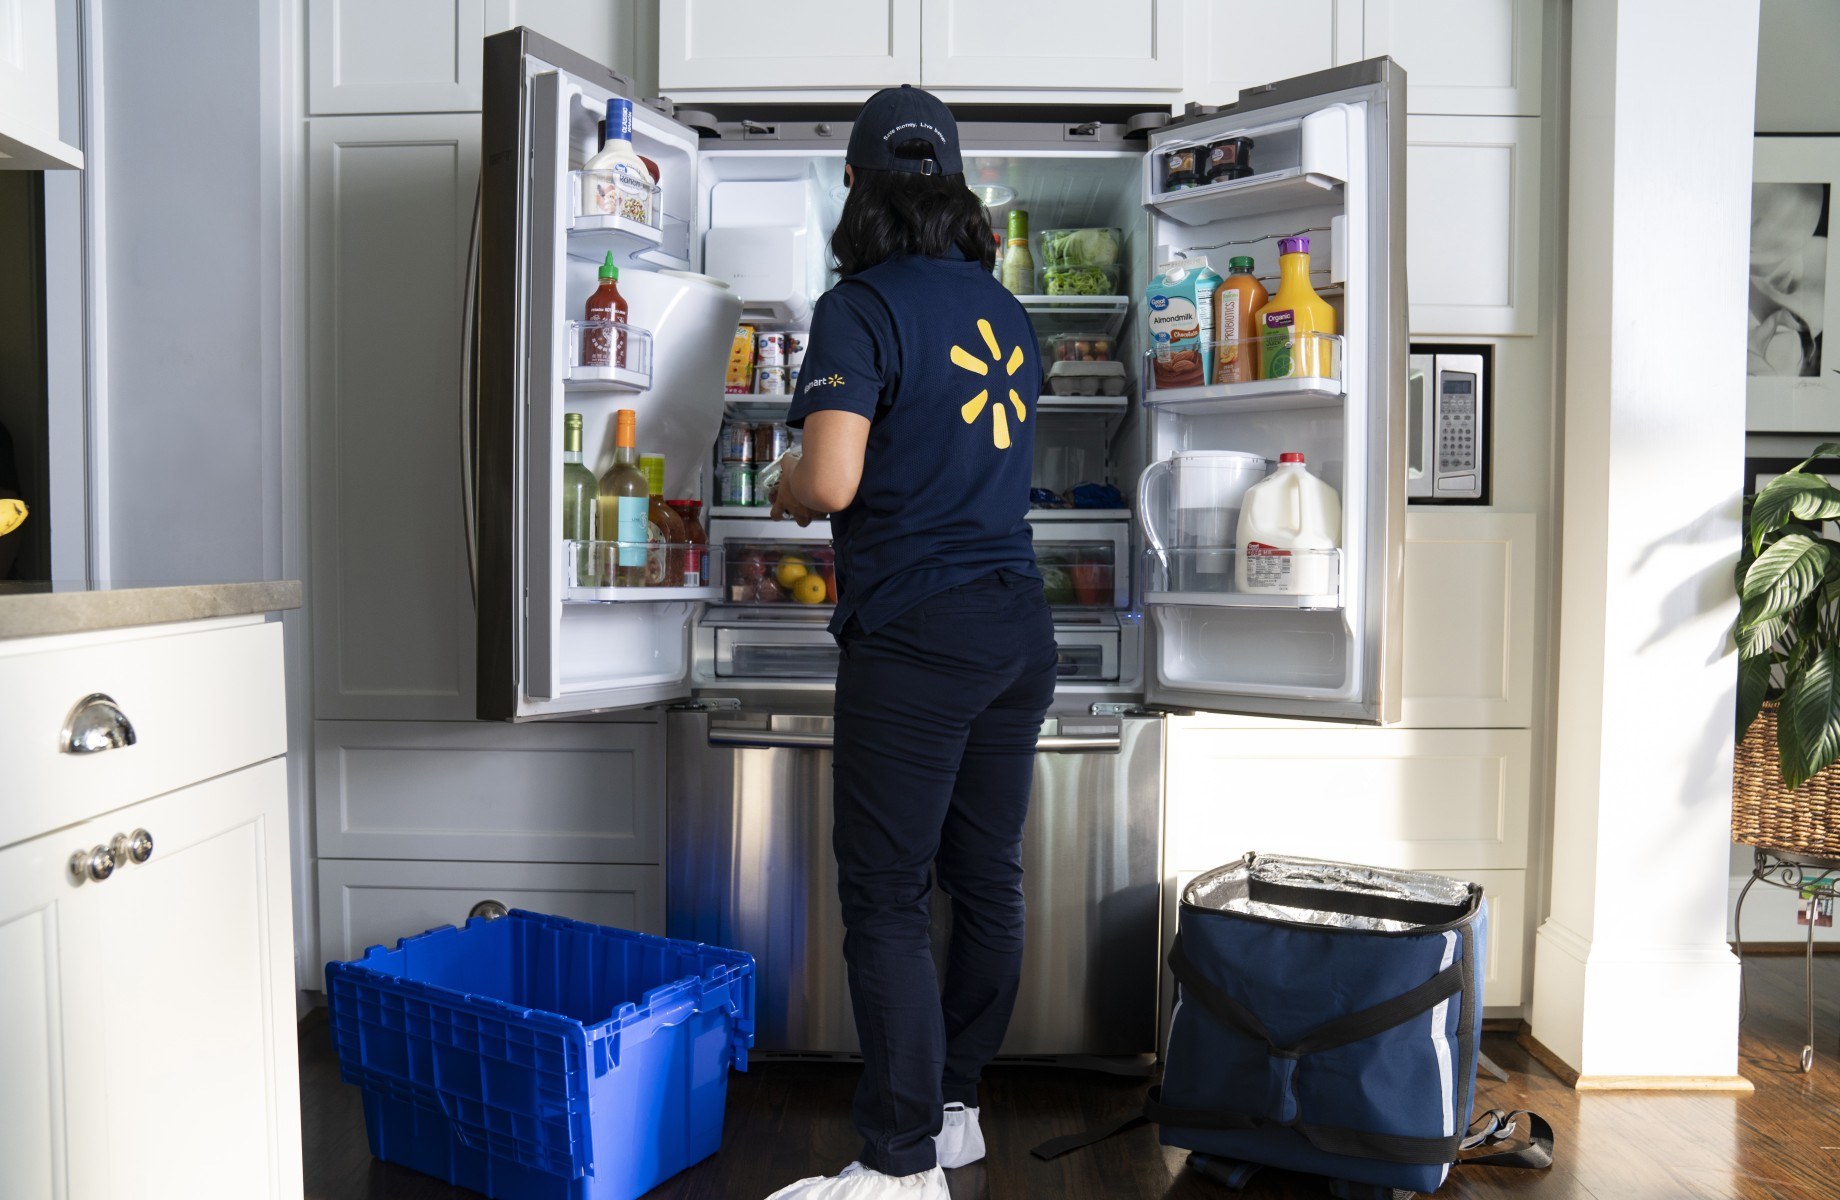 Walmart Will Deliver Groceries Directly to Your Fridge to Compete With Amazon